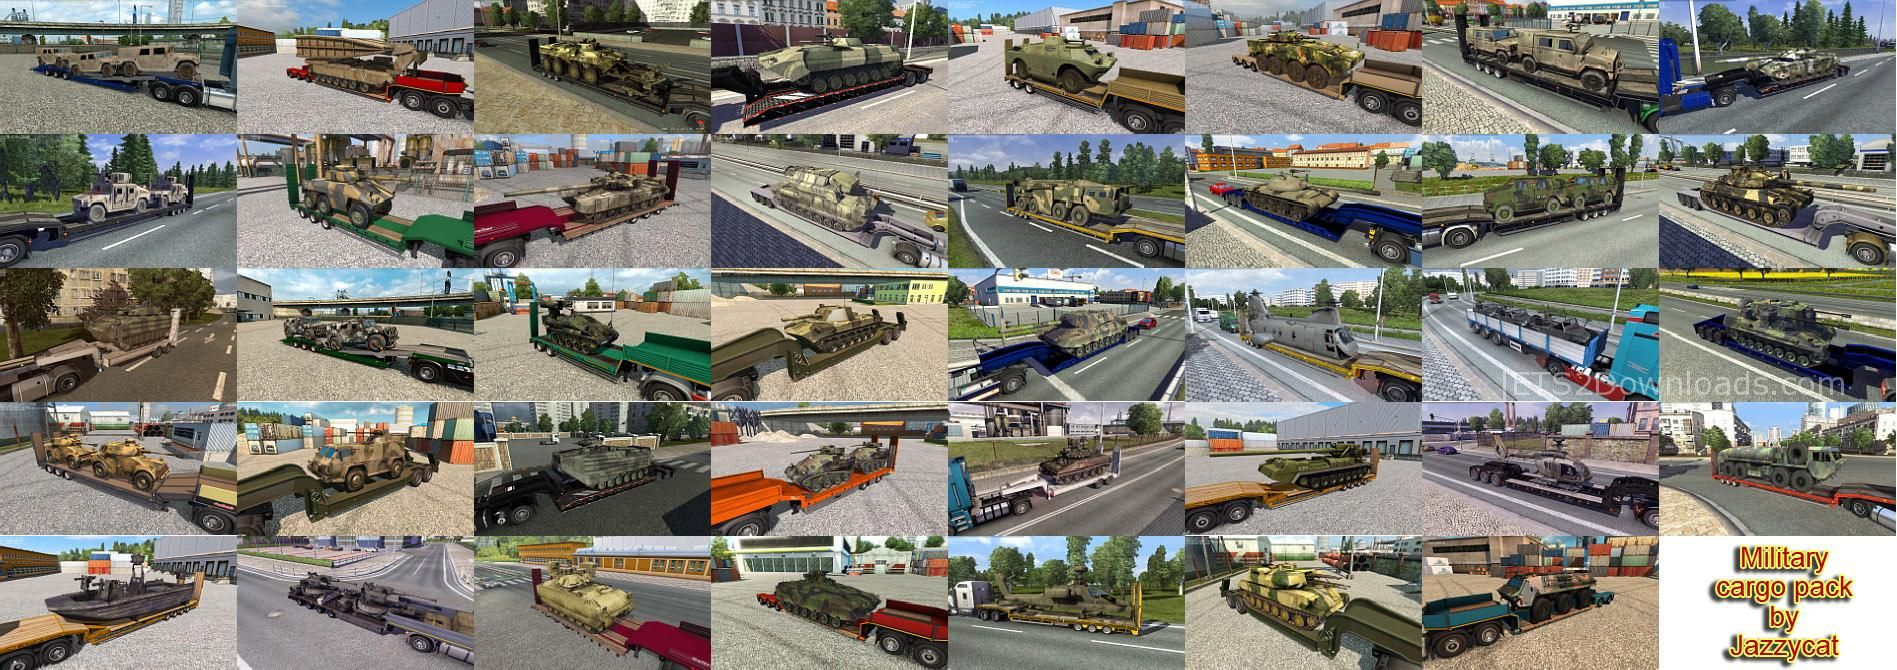 addons-military-cargo-pack-v1-9-jazzycat-1